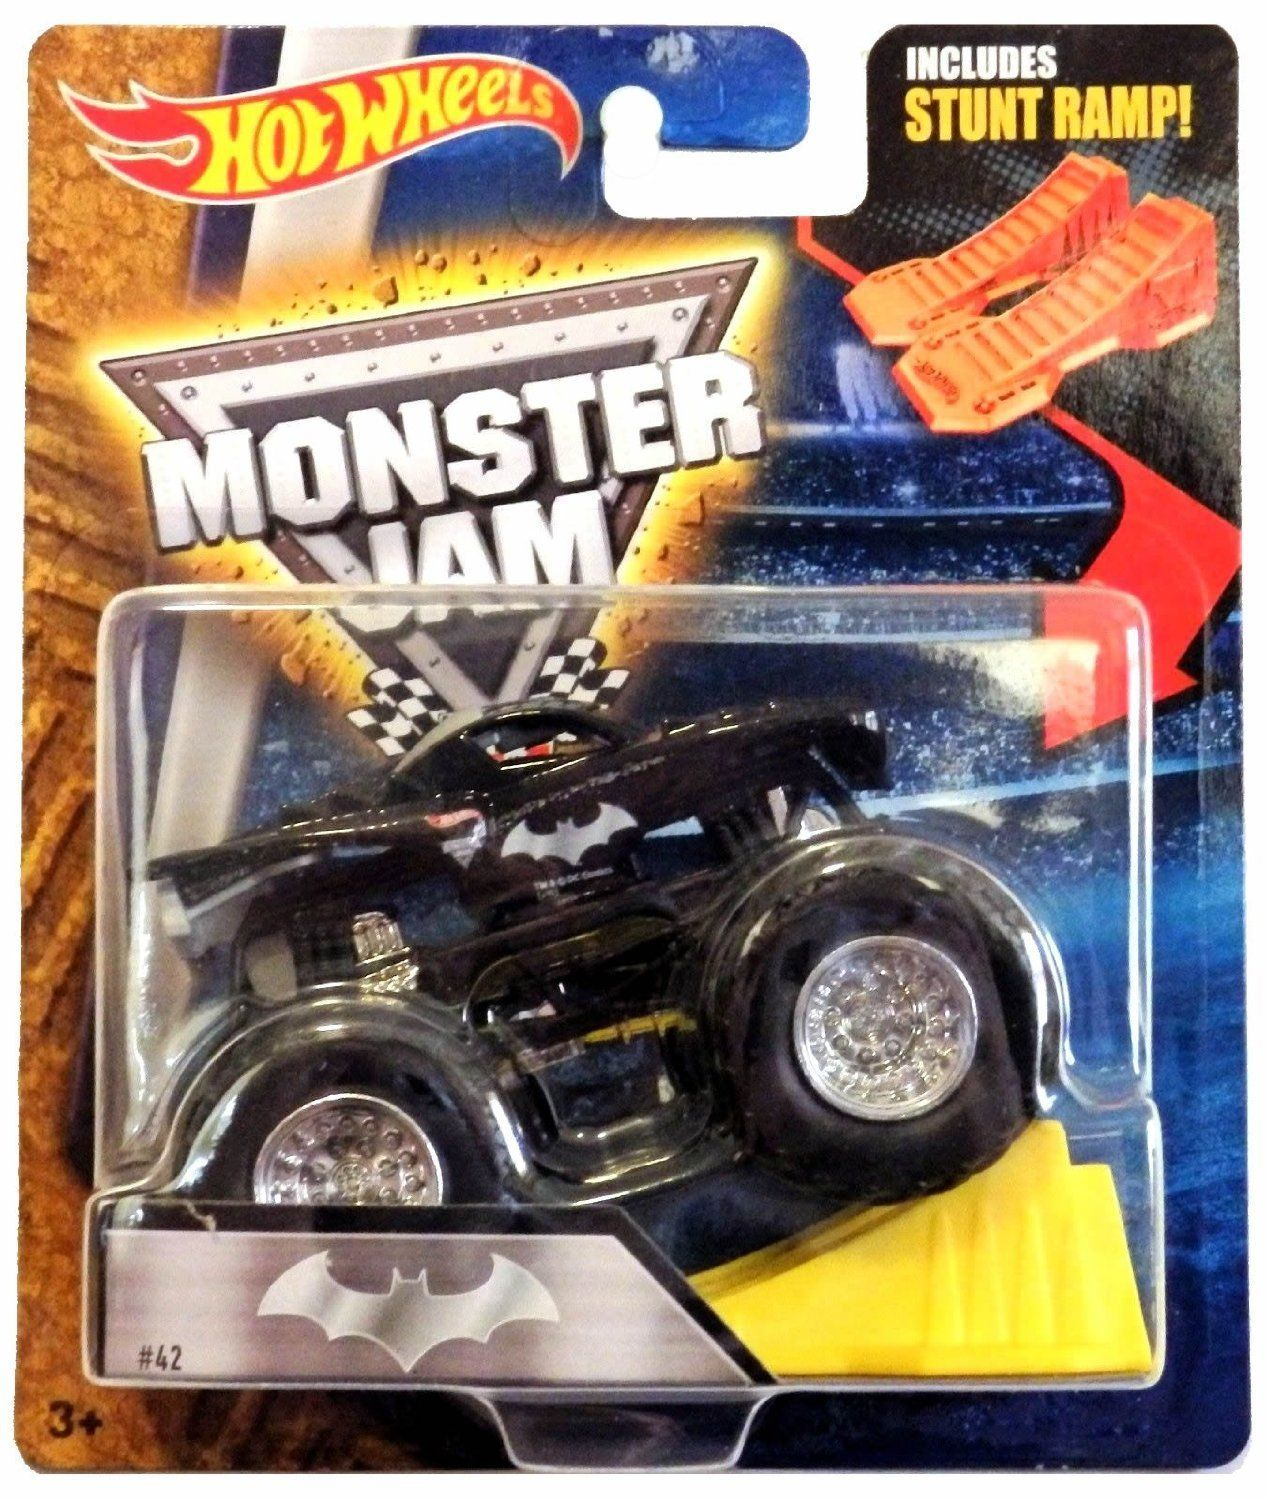 Amazon Com Hot Wheels Monster Jam Batman 42 Includes Stunt Ramp Rare Everything Else Hot Wheels Monster Jam Hot Wheels Monster Jam